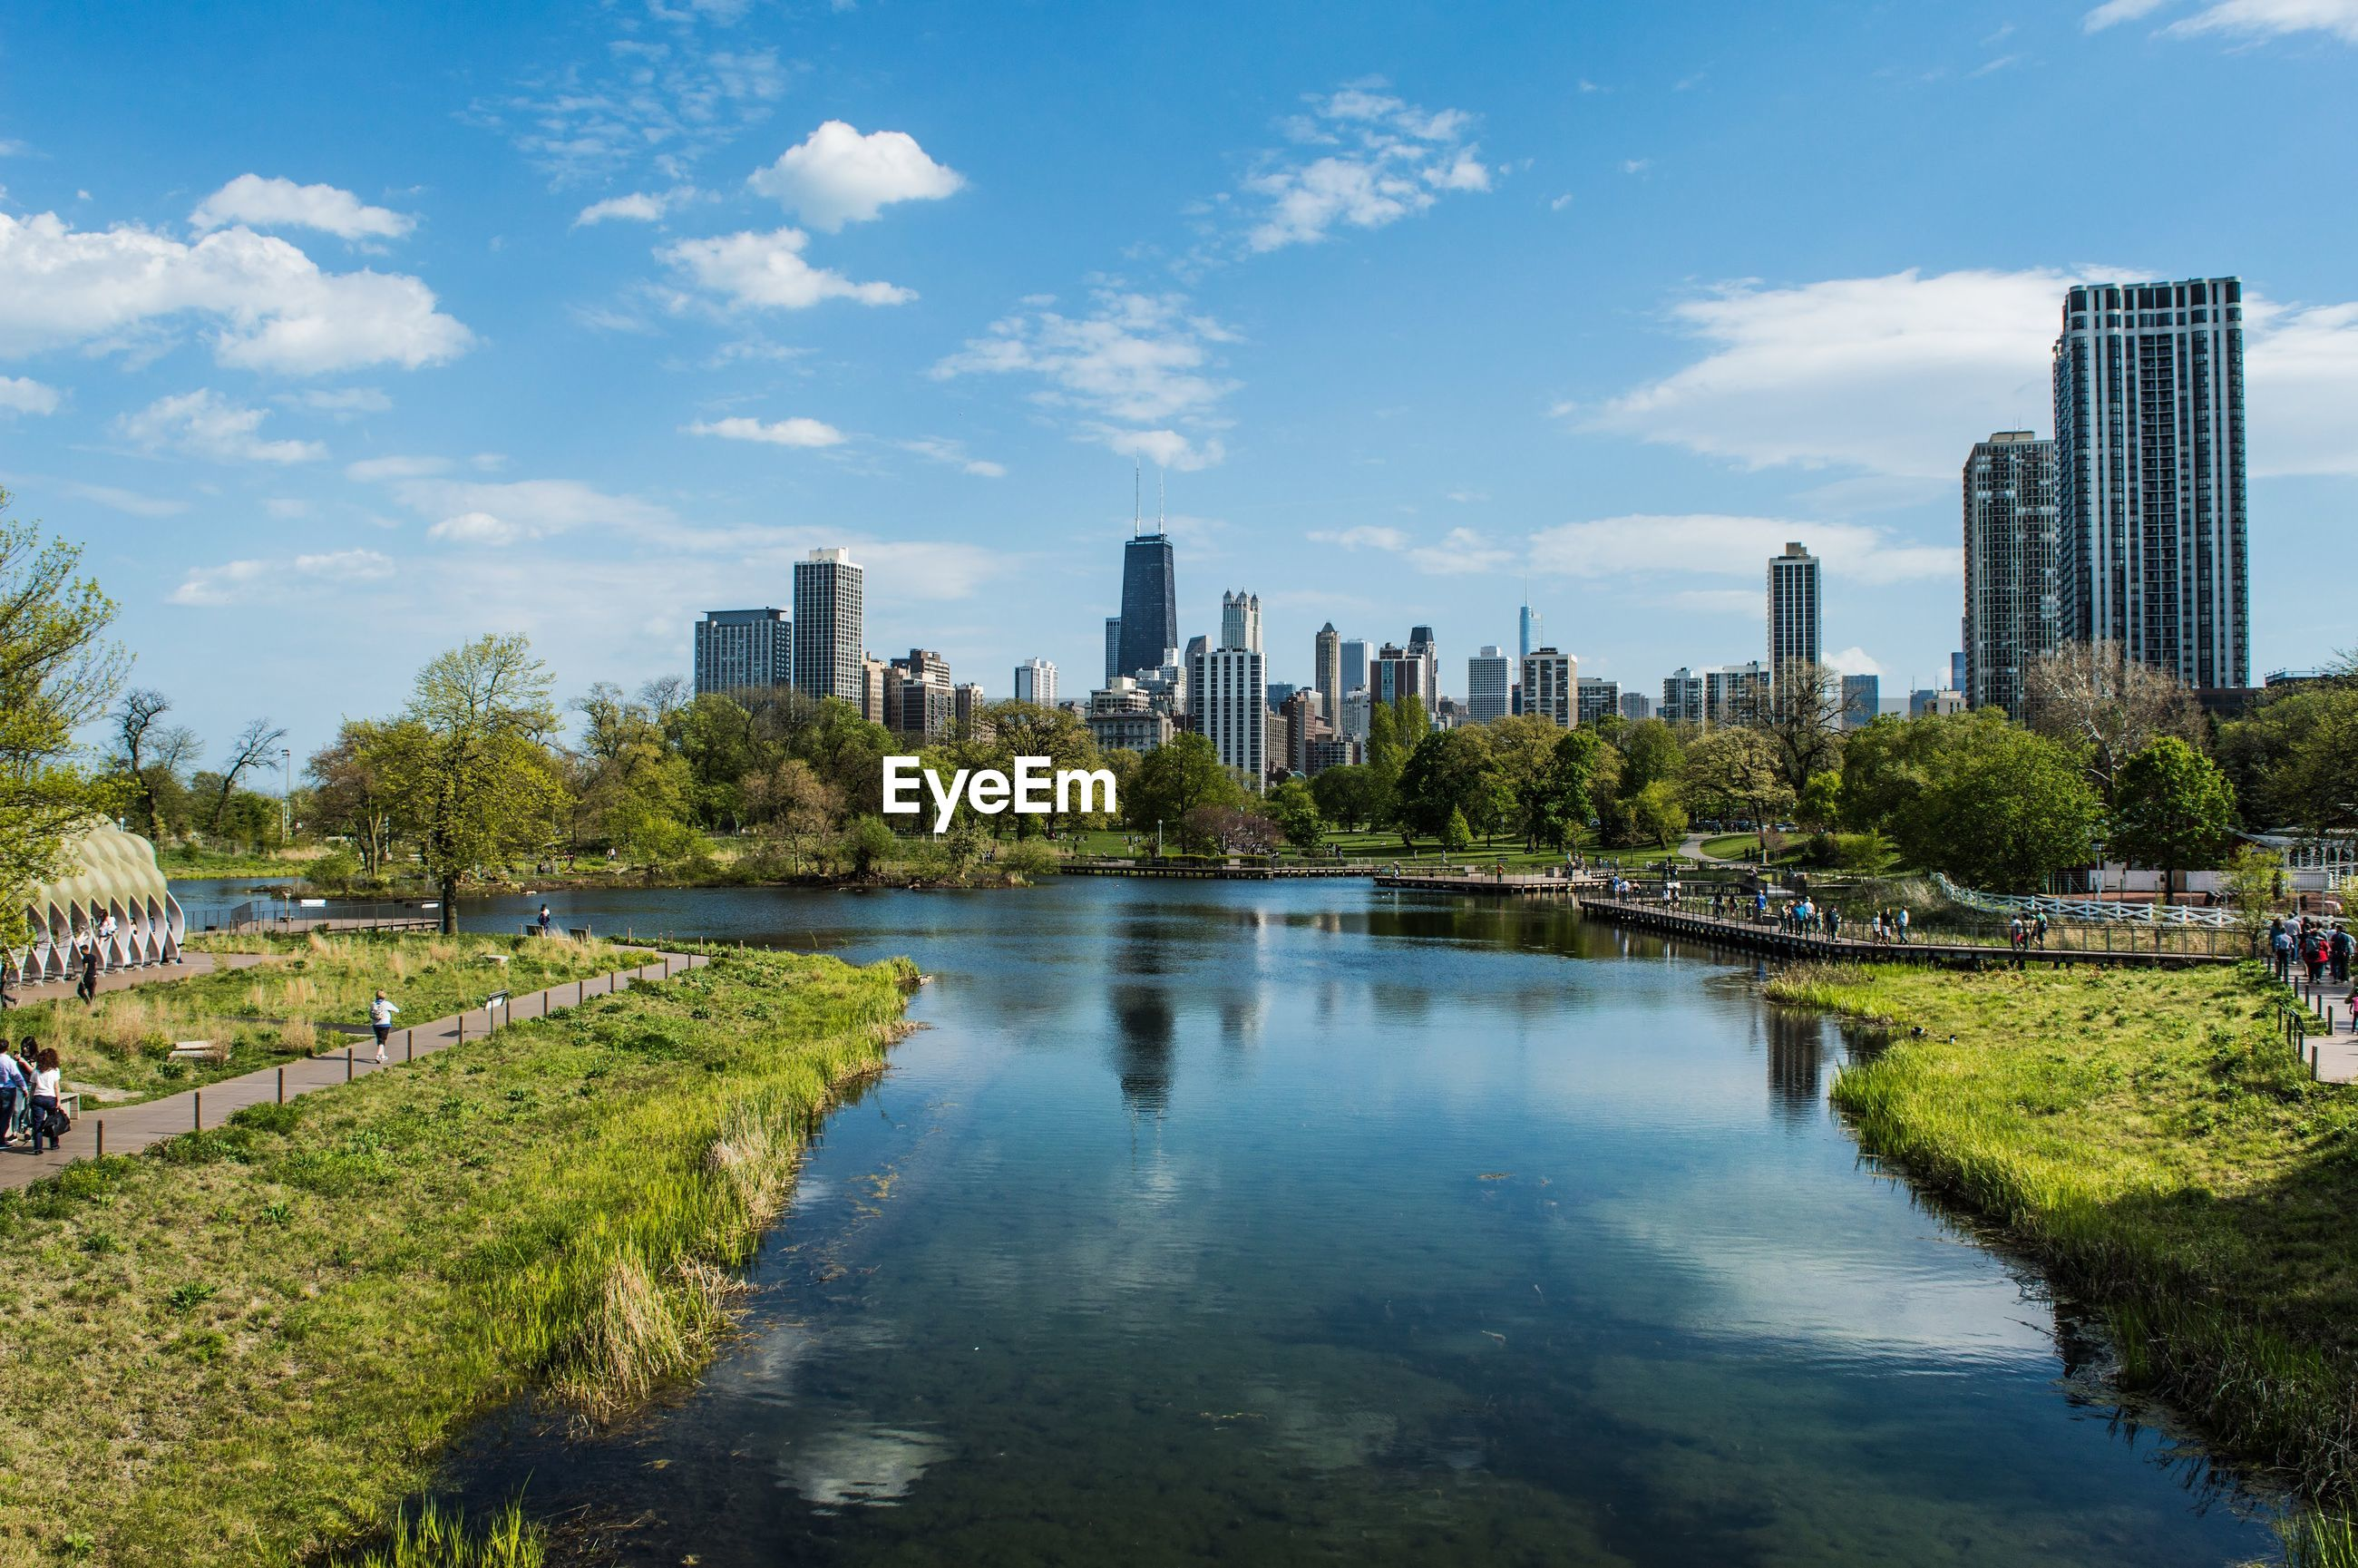 SCENIC VIEW OF RIVER AND CITY AGAINST SKY